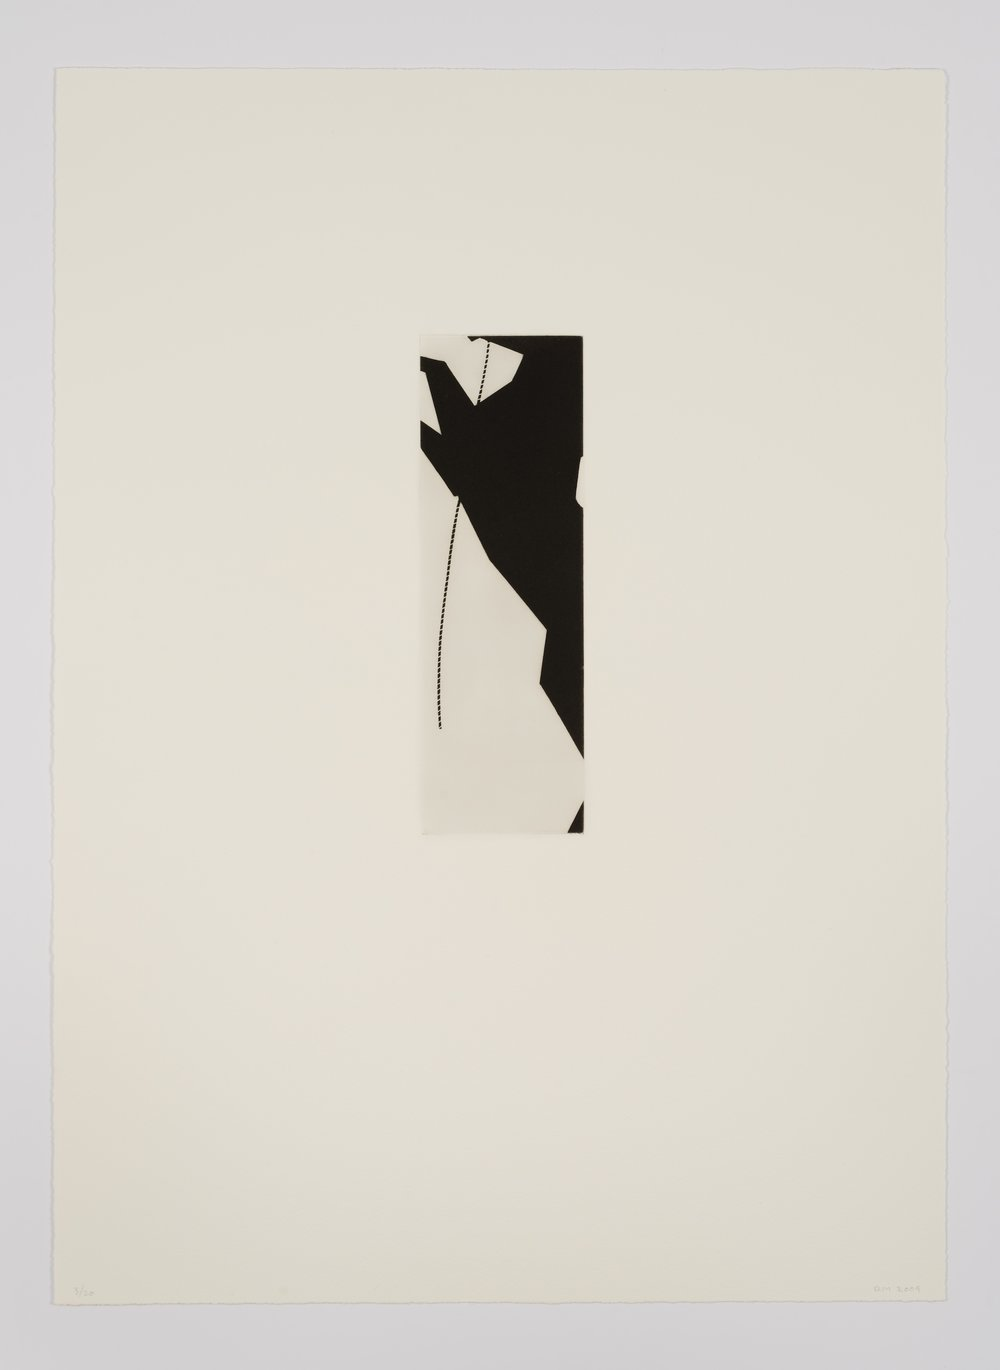 Robert Moskowitz, Untitled, 2009, Etching with aquatint, ed. 20, image: 7 7/8 x 2 9/16 inches, sheet: 19 1/2 x 14 inches, RMO0906  8/12  Lawrence Markey Inc.